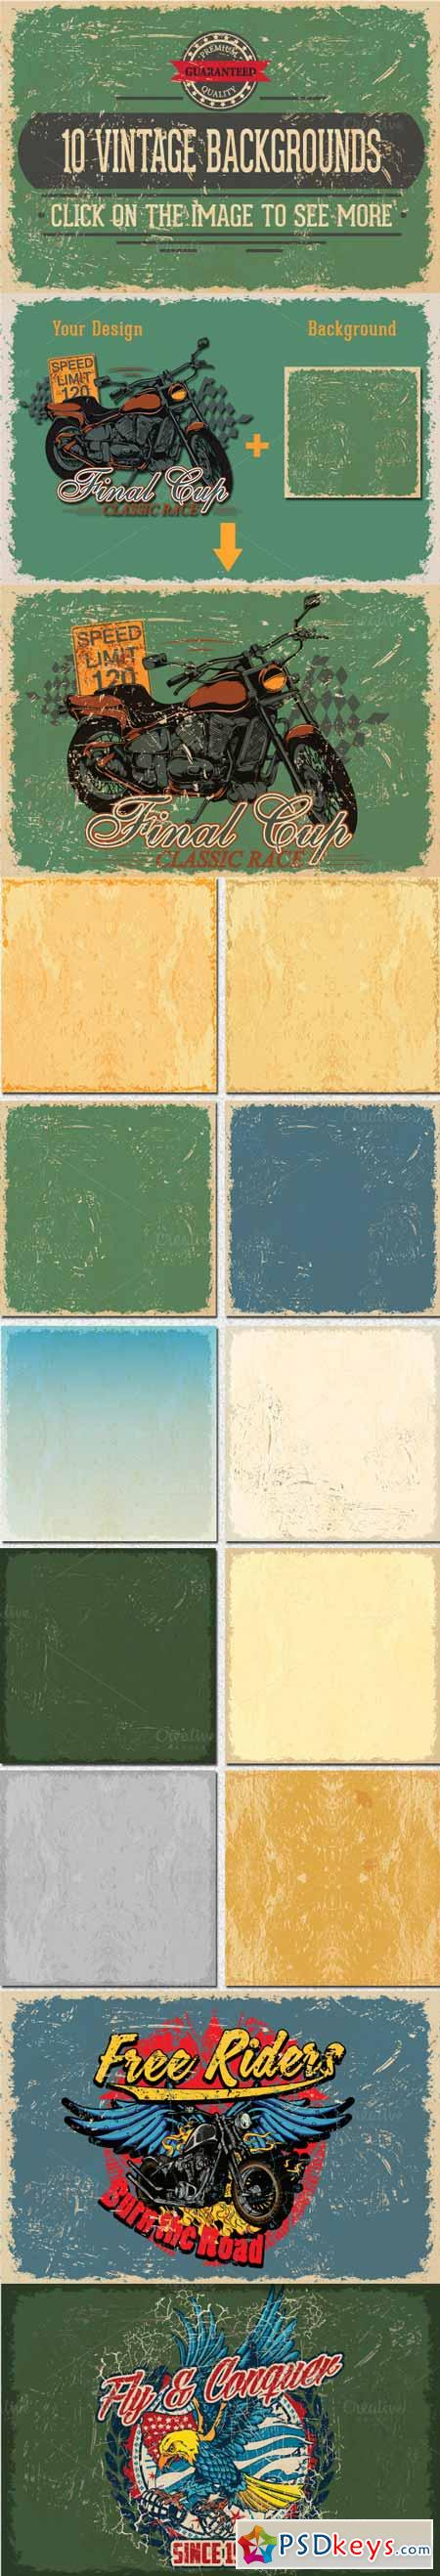 Vintage Vector Background Textures 166676